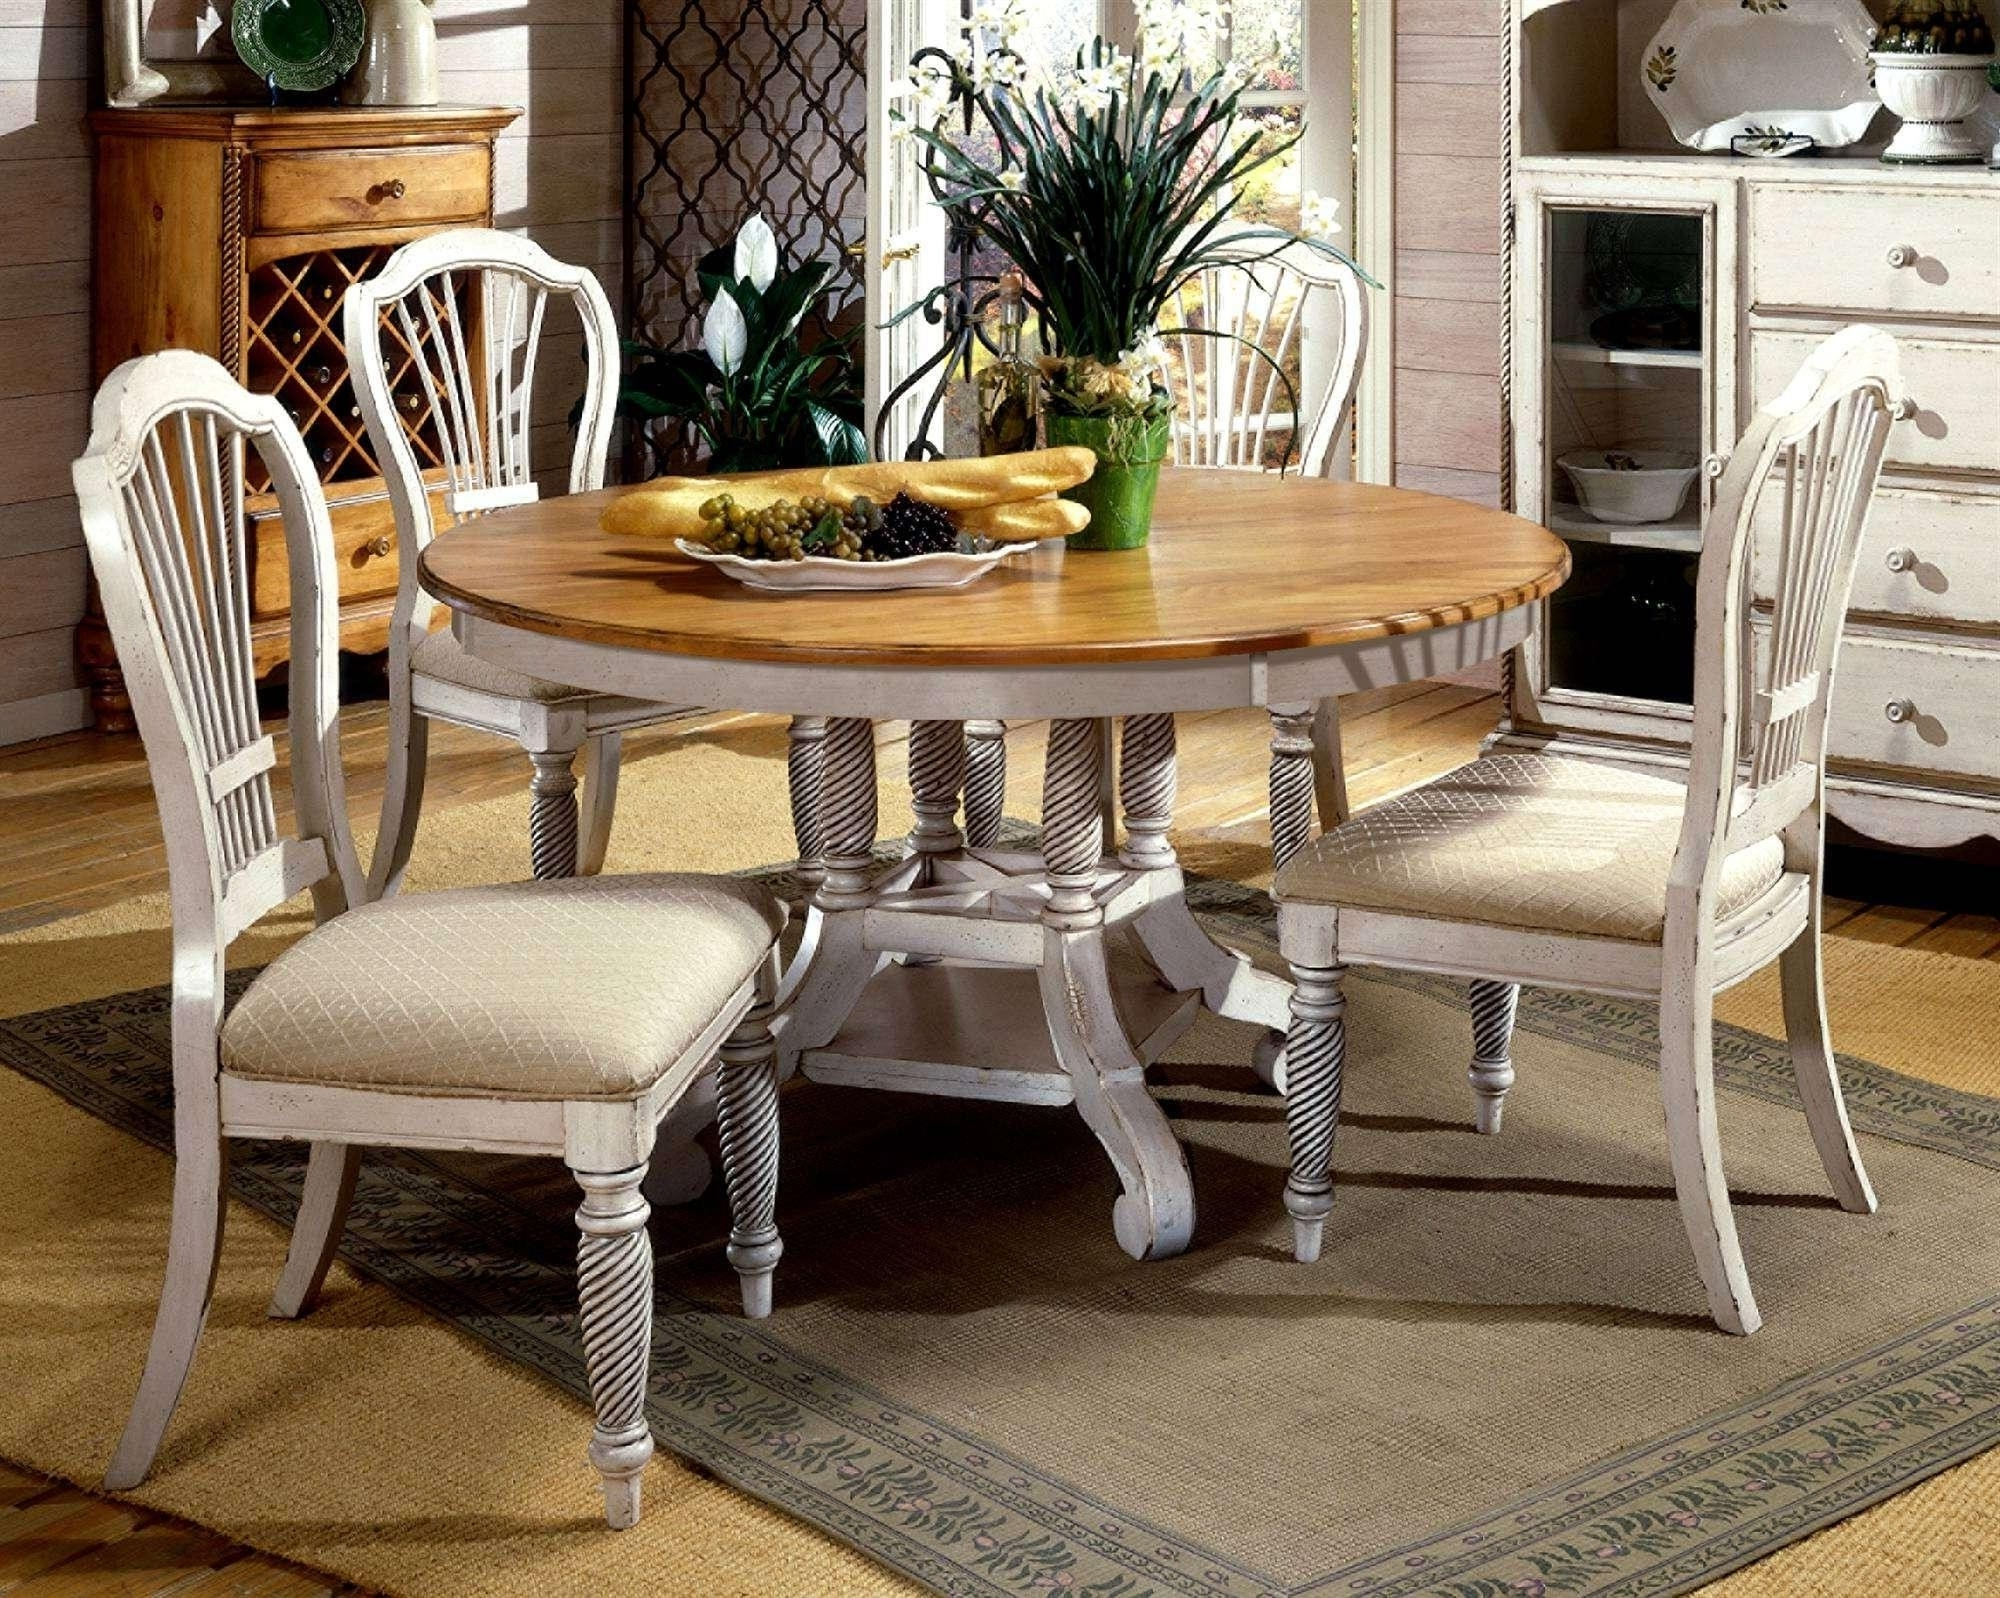 30 Lovely 6 Person Dining Table Size – Welovedandelion Regarding Newest Round 6 Person Dining Tables (View 3 of 25)